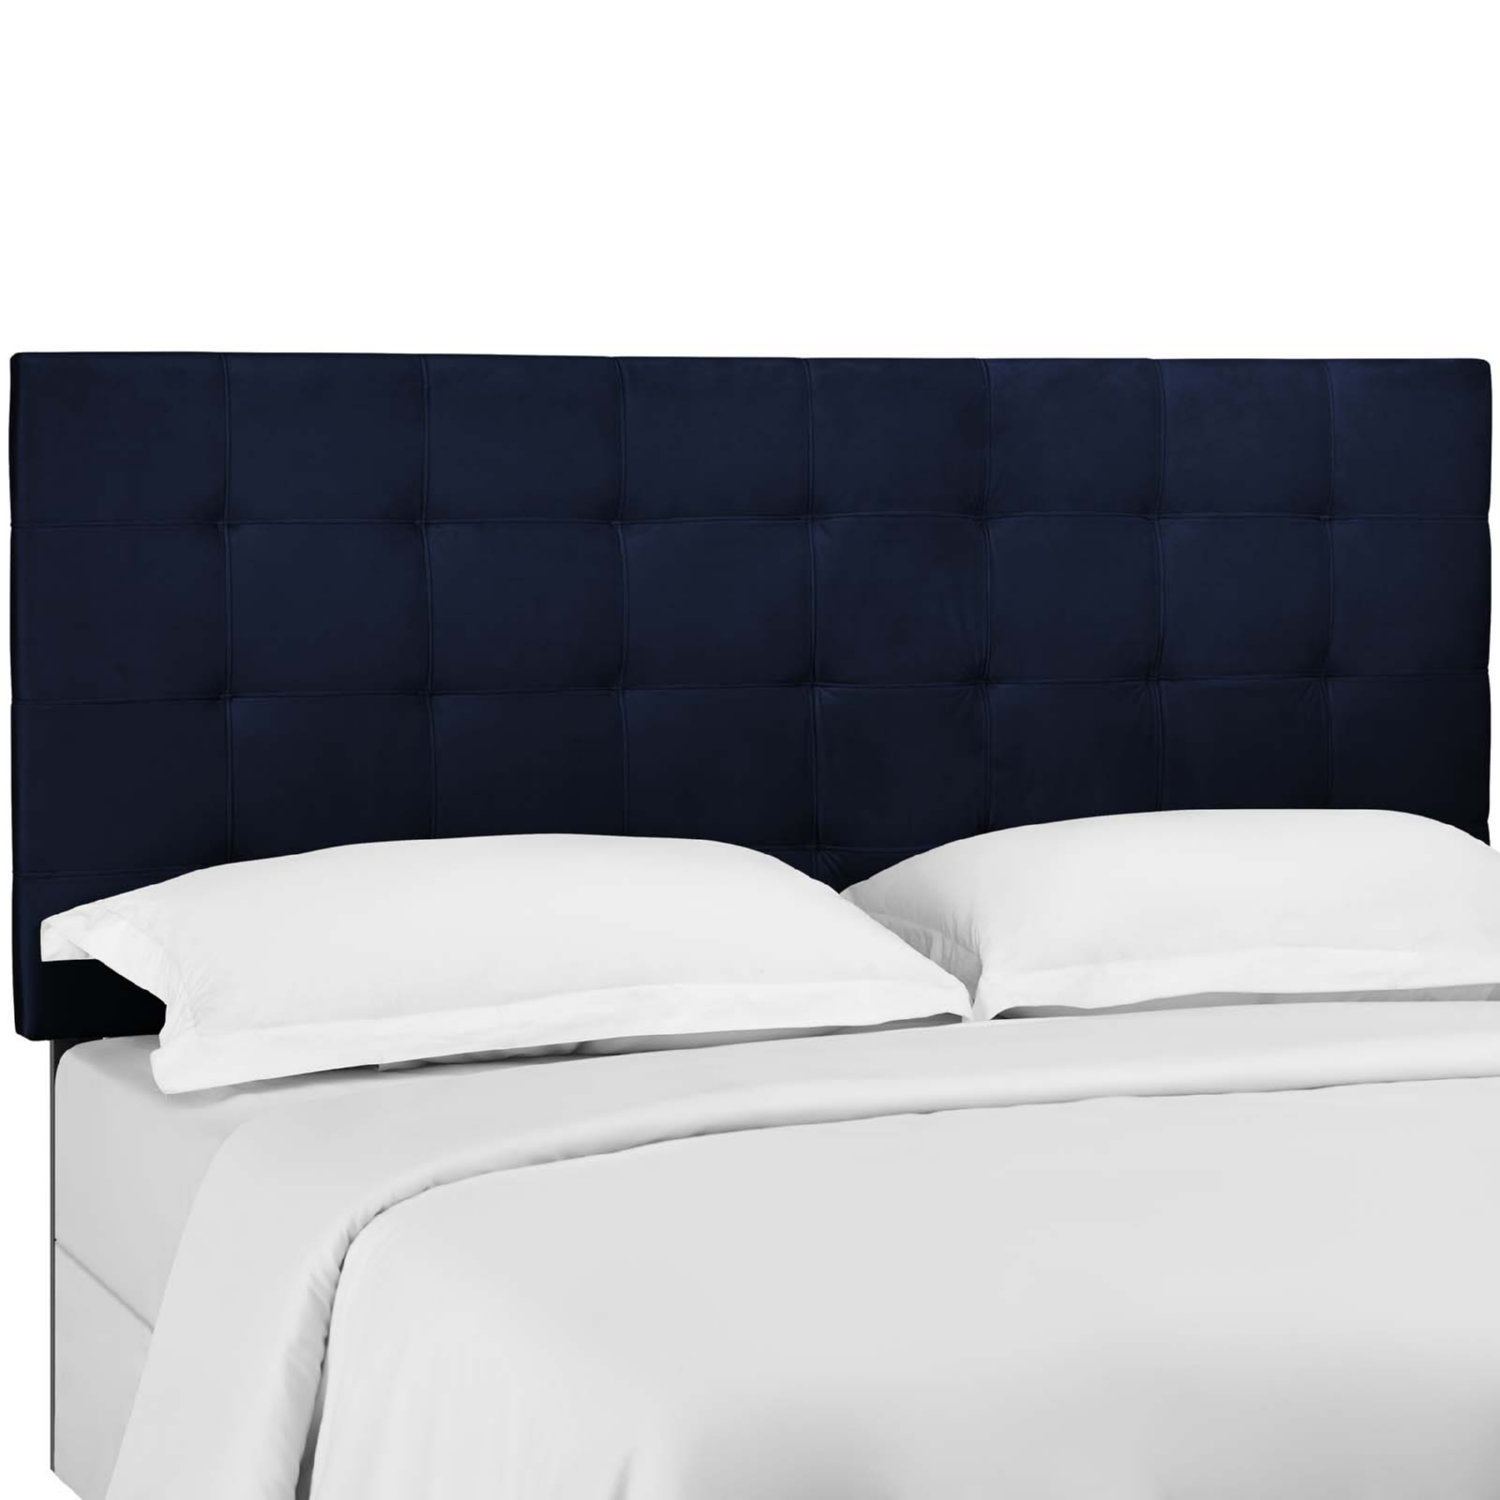 Picture of: Modway Mod 5856 Mid Paisley King California King Headboard In Tufted Midnight Blue Velvet